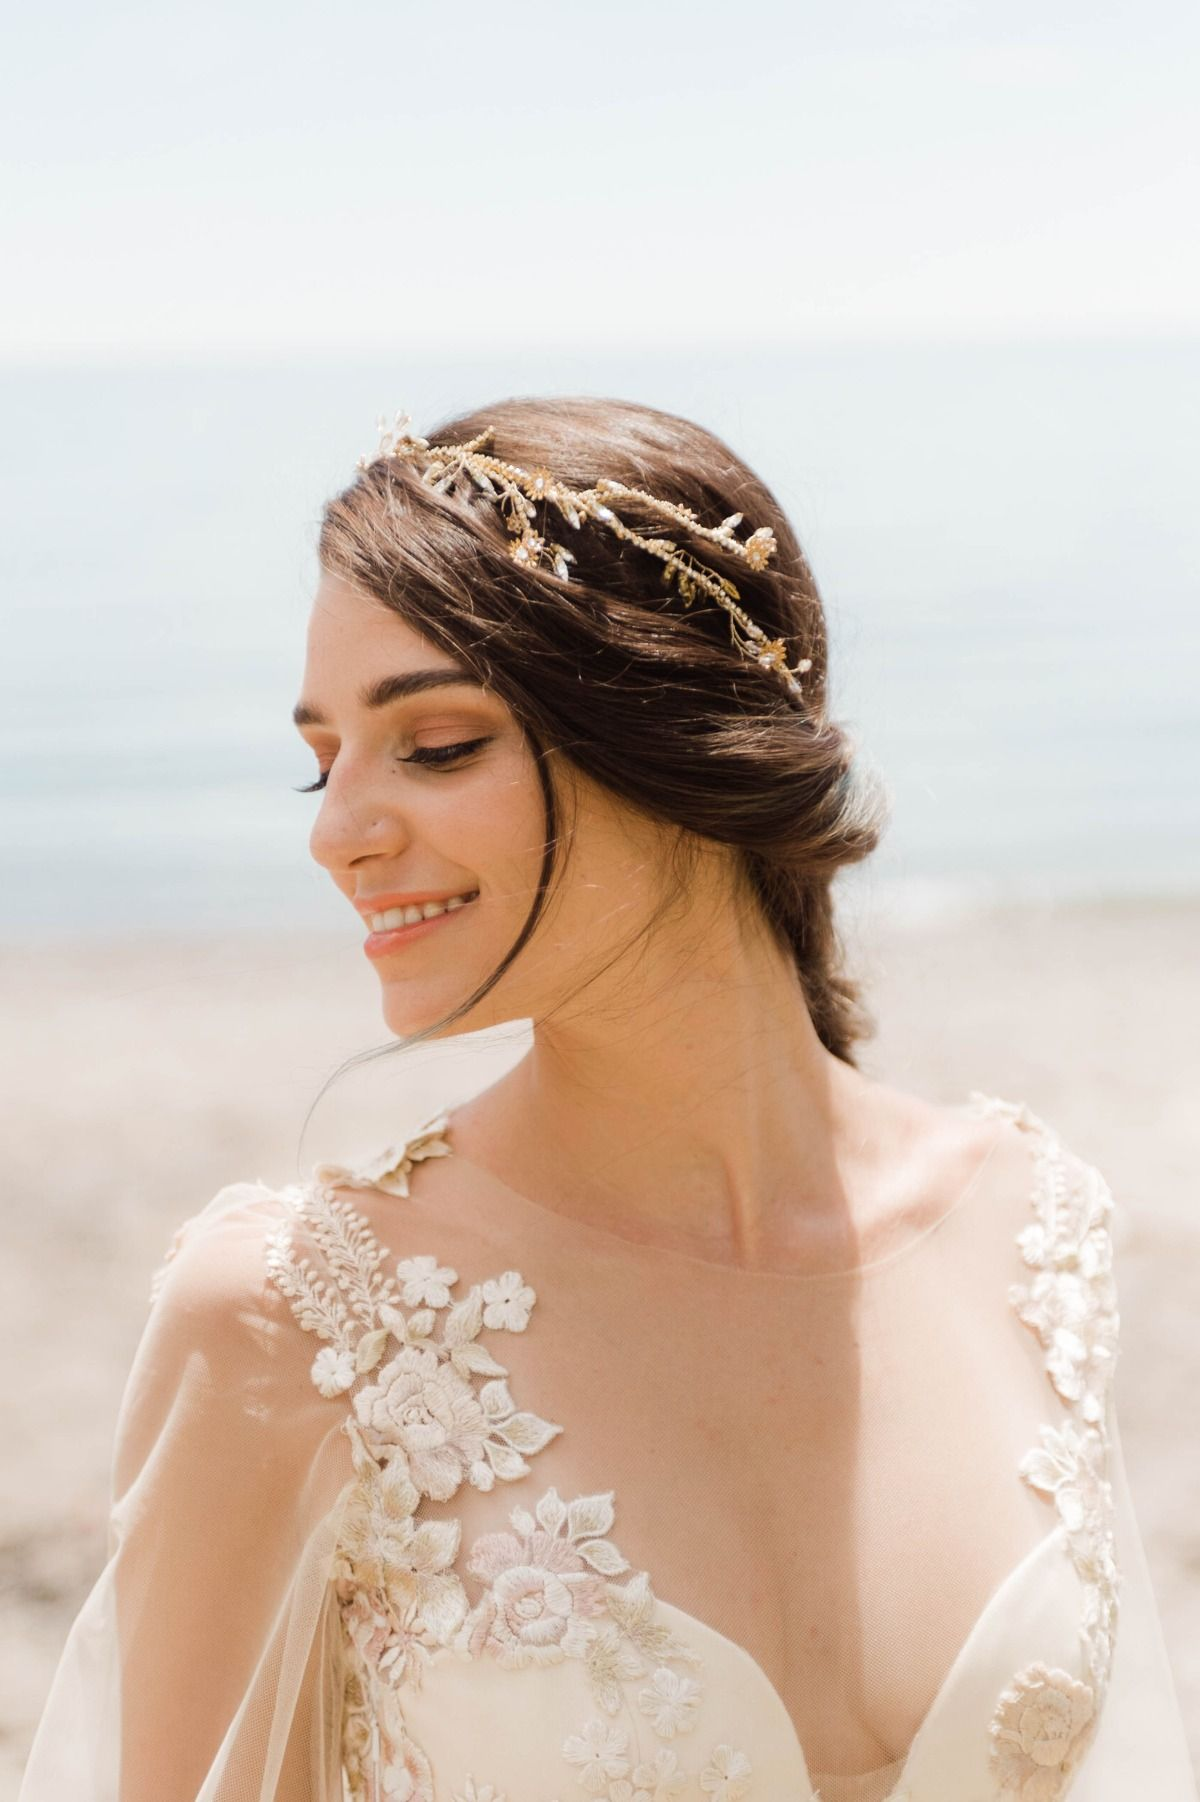 let's elope like this next summer   hair adornments